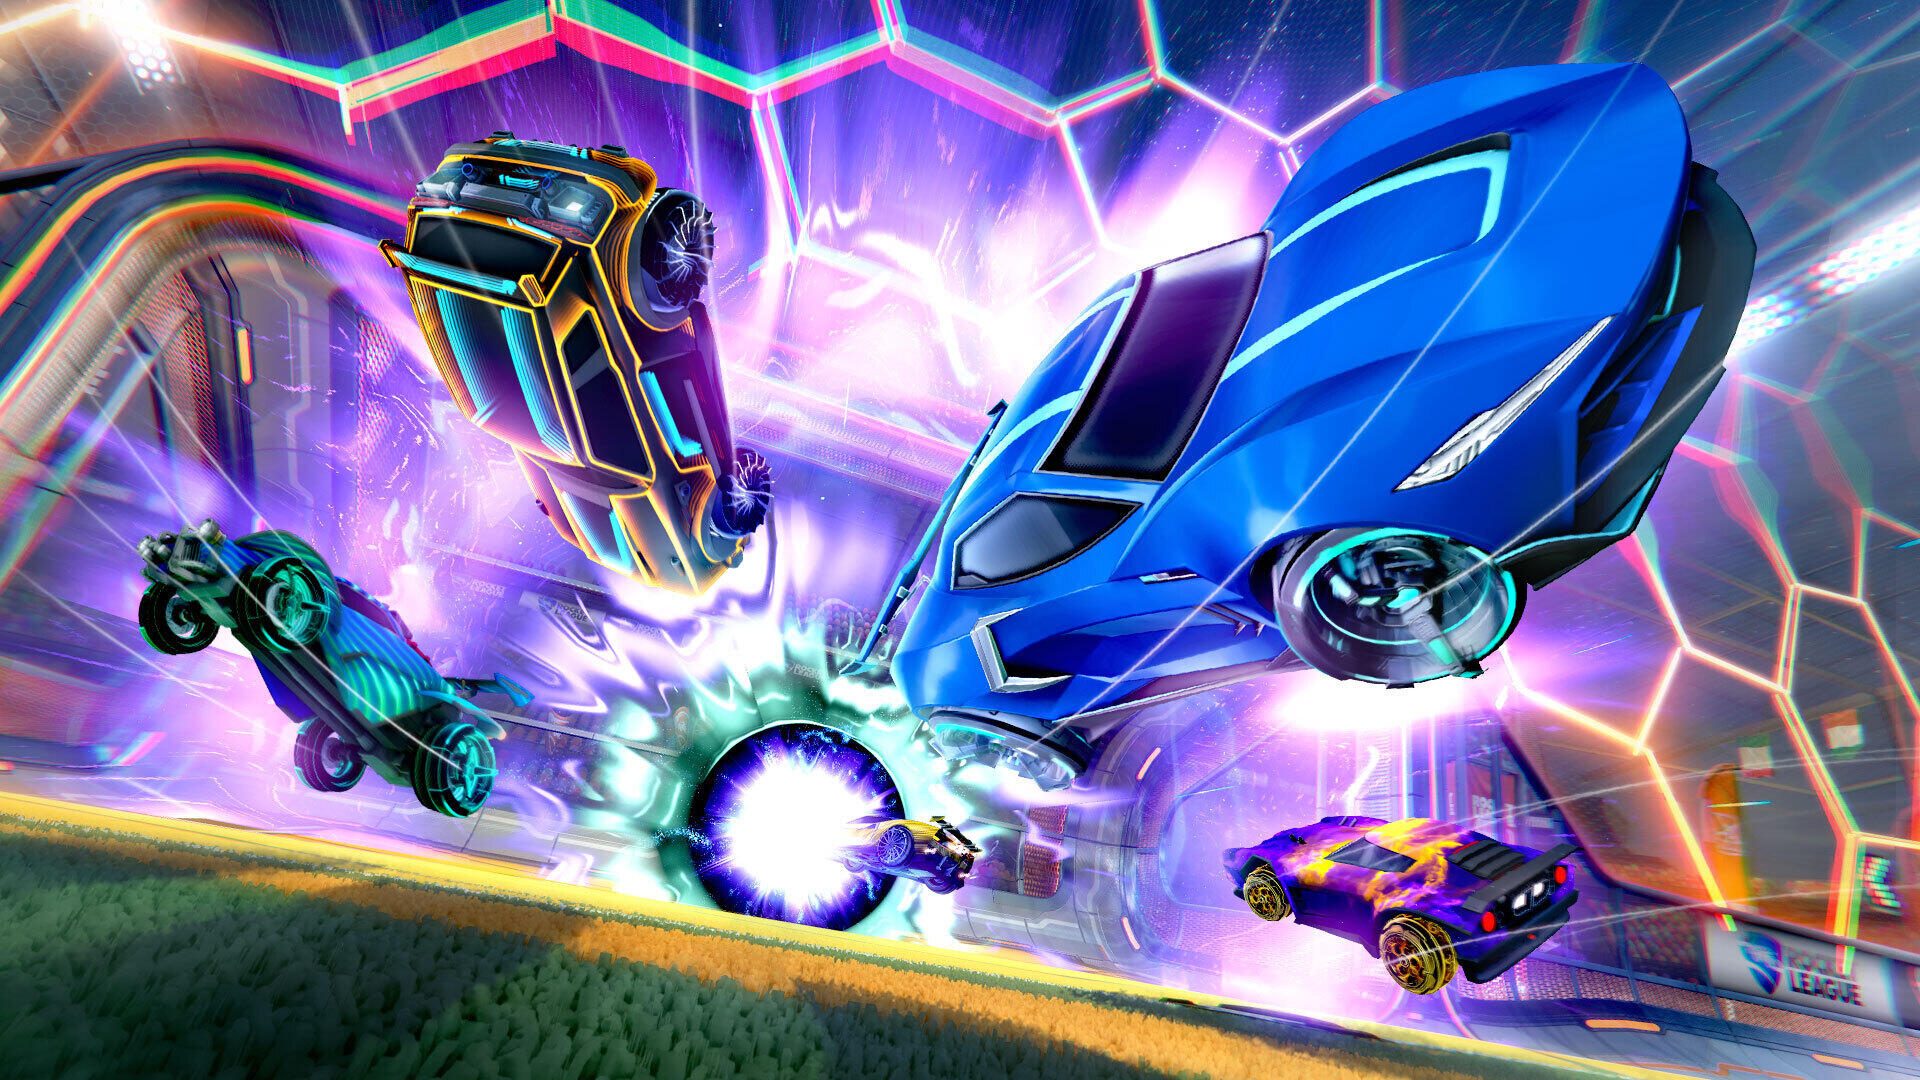 The Fortnite Battle Bus vehicle is coming to Rocket League